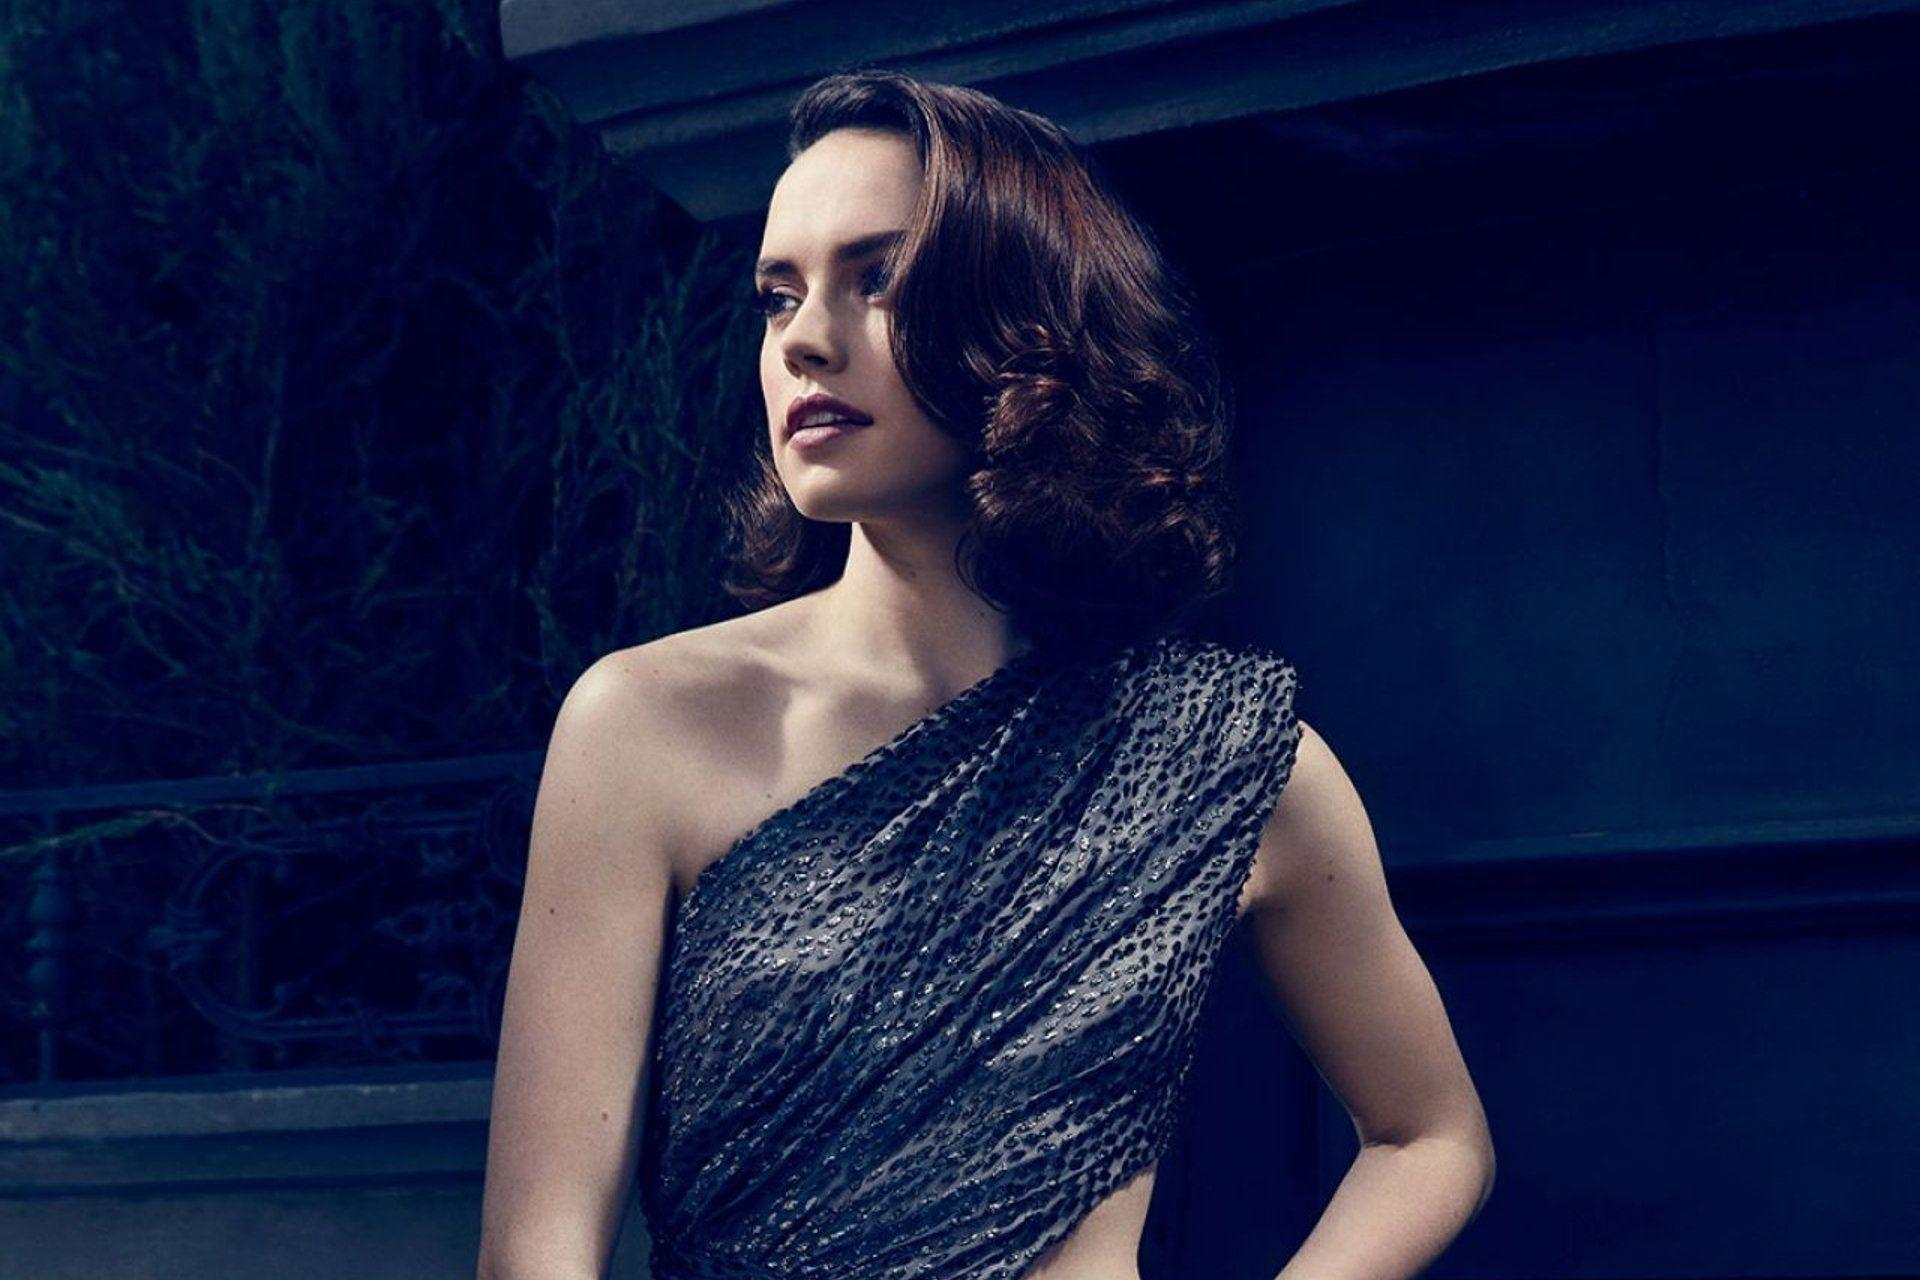 Daisy Ridley Full HD Wallpaper and Background Image | 1920x1280 | ID ...